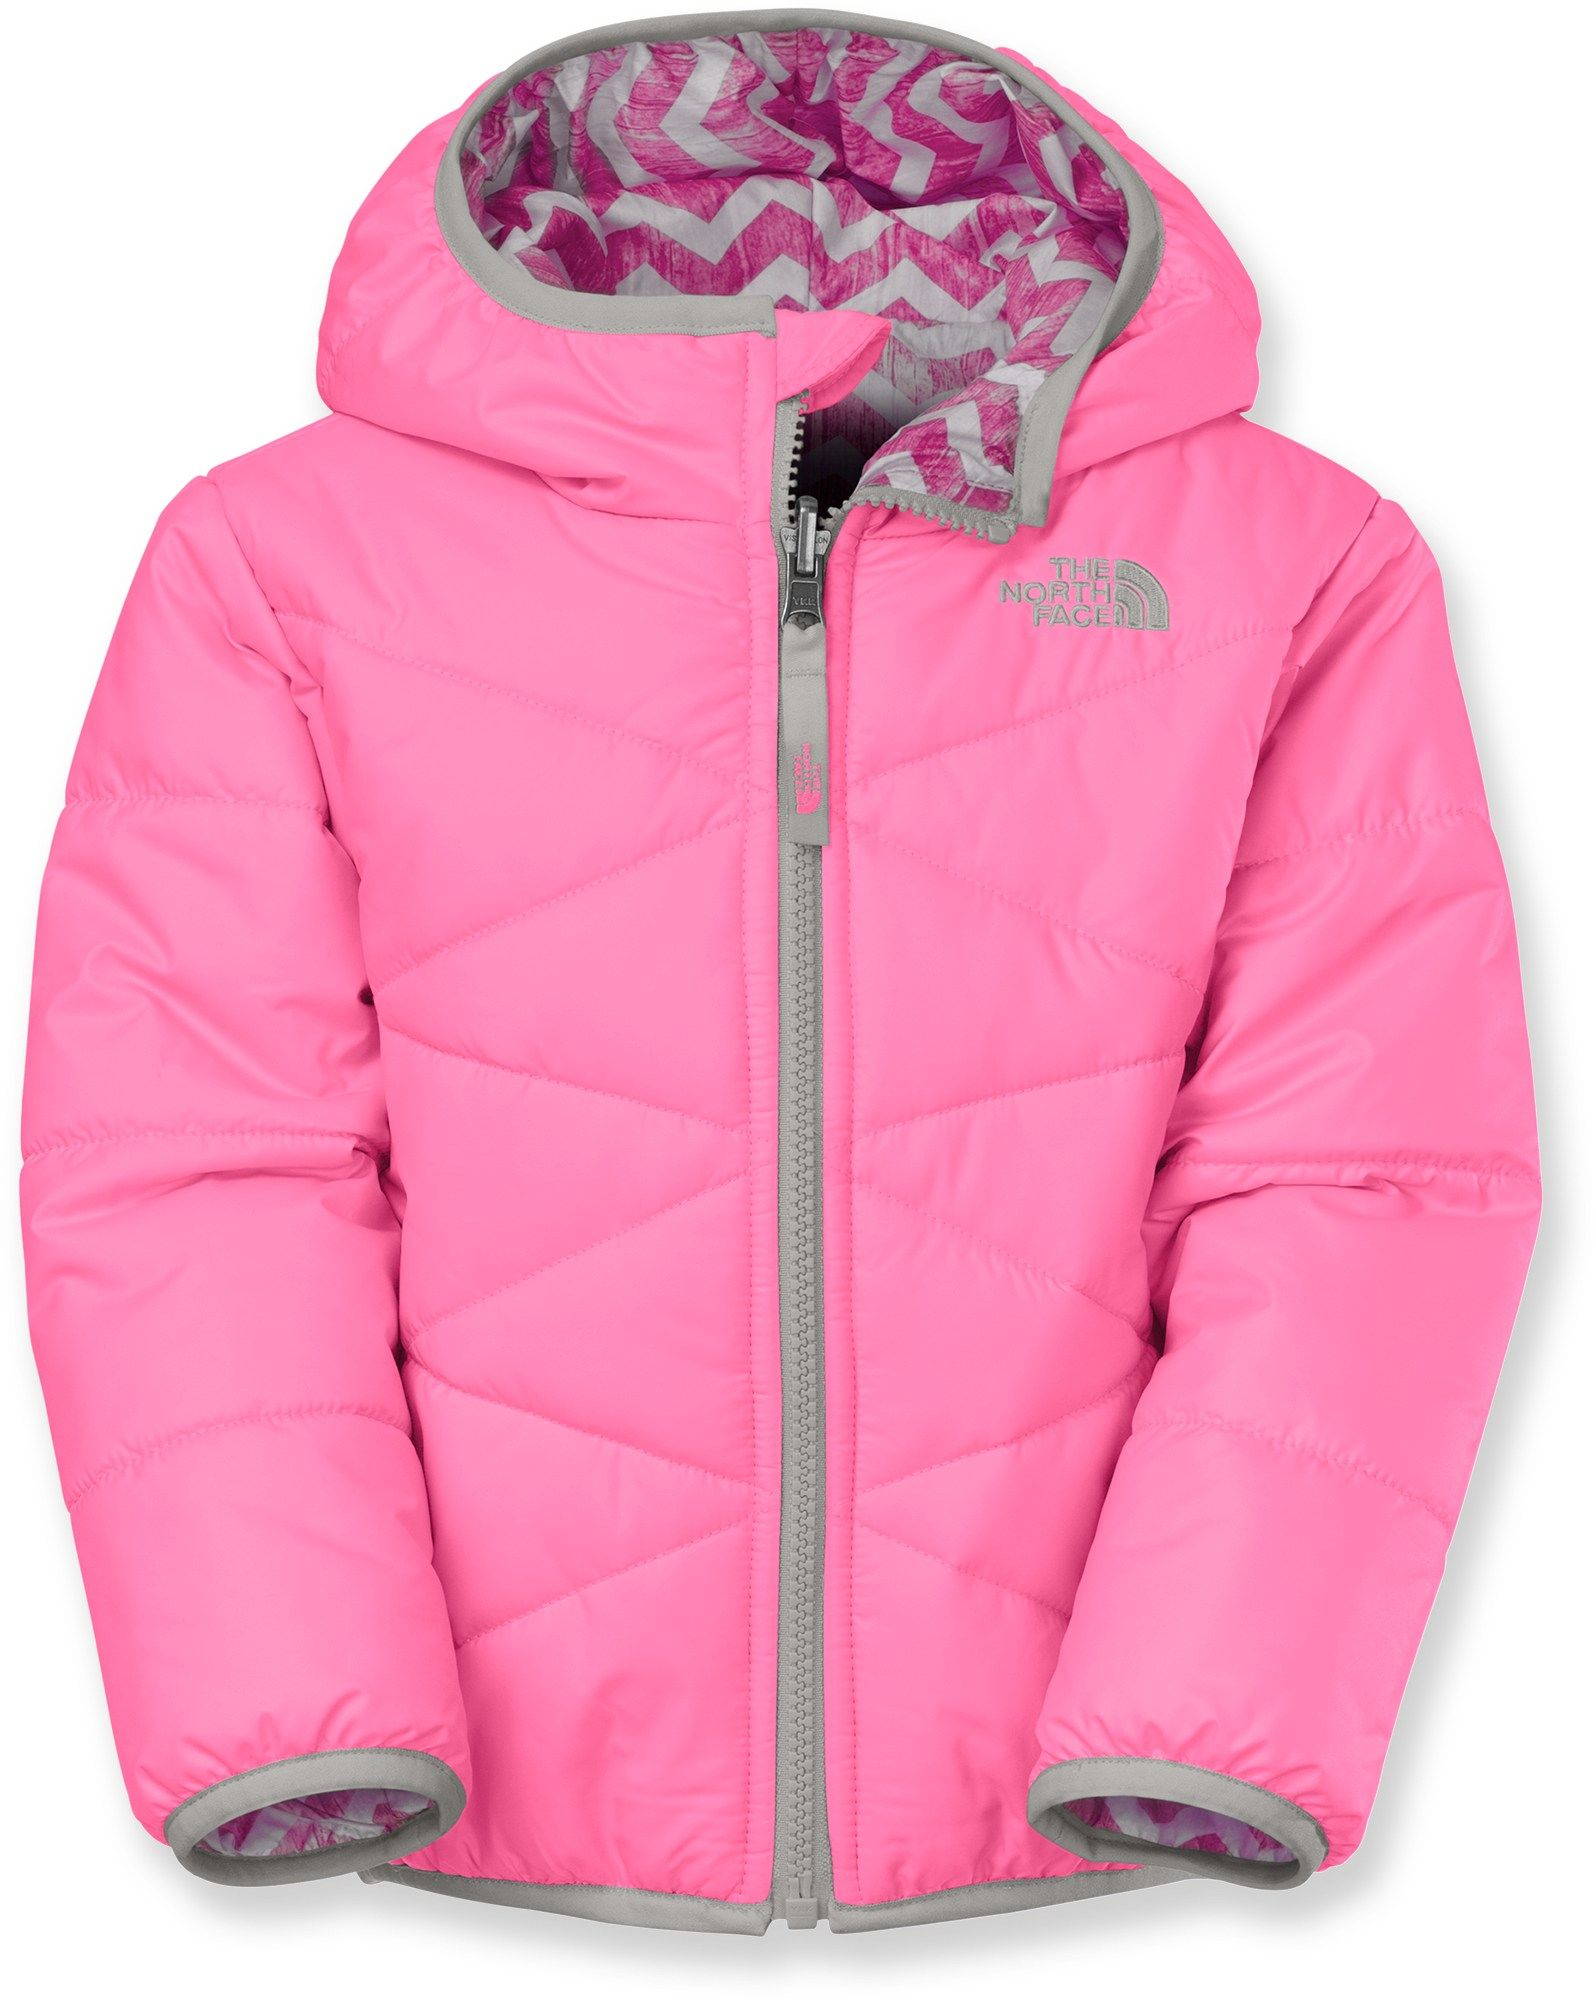 The North Face Perrito Reversible Insulated Jacket Toddler Girls Rei Co Op [ 2000 x 1594 Pixel ]